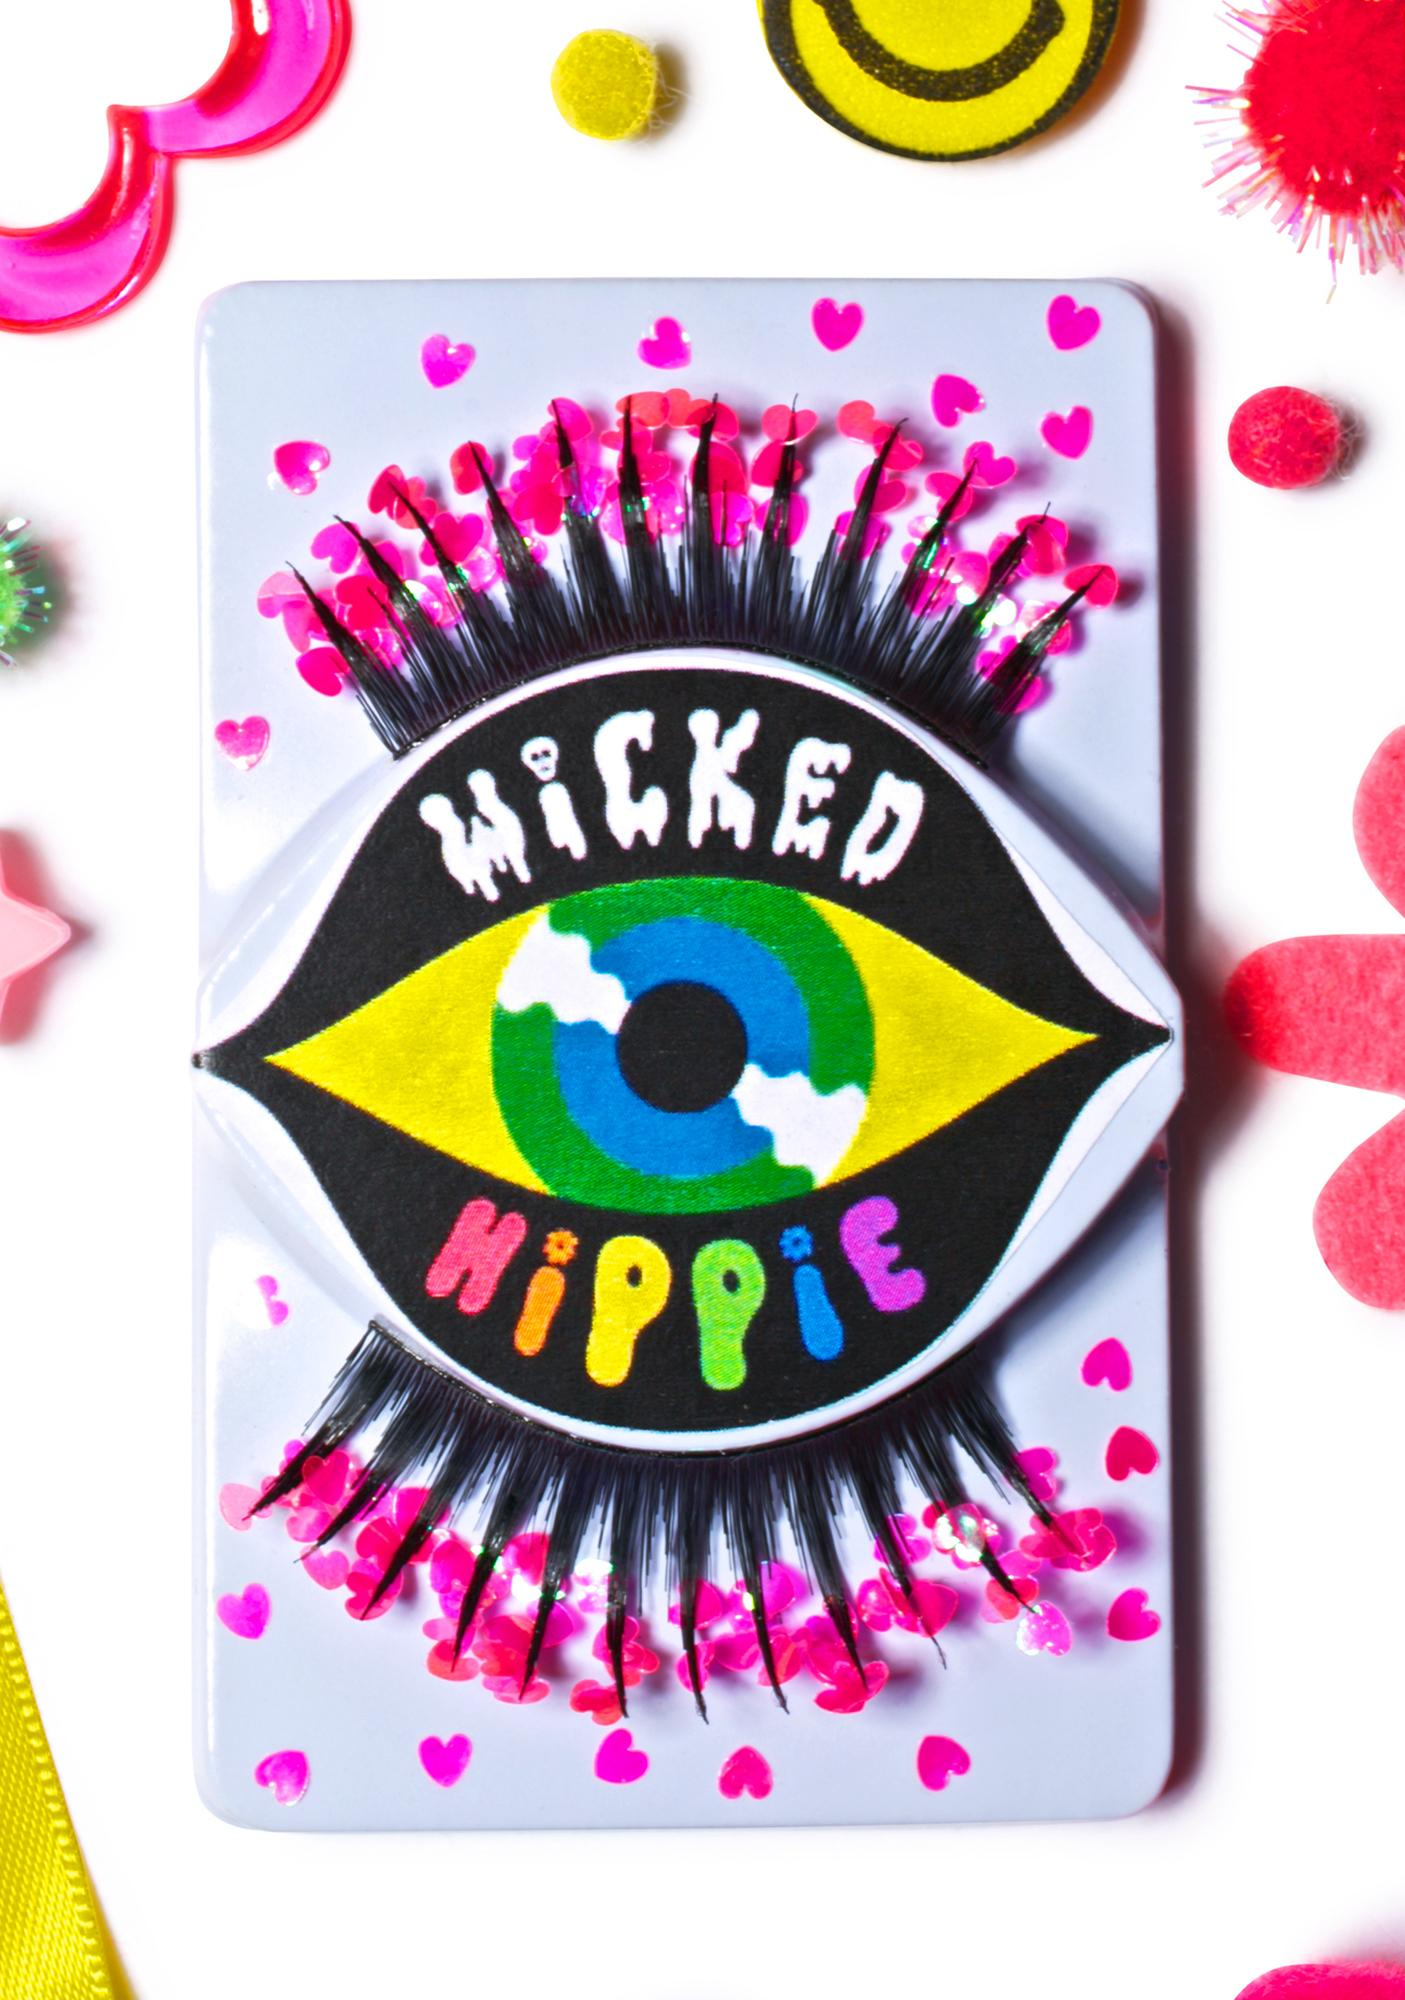 Wicked Hippie Eye Heart False Eyelashes